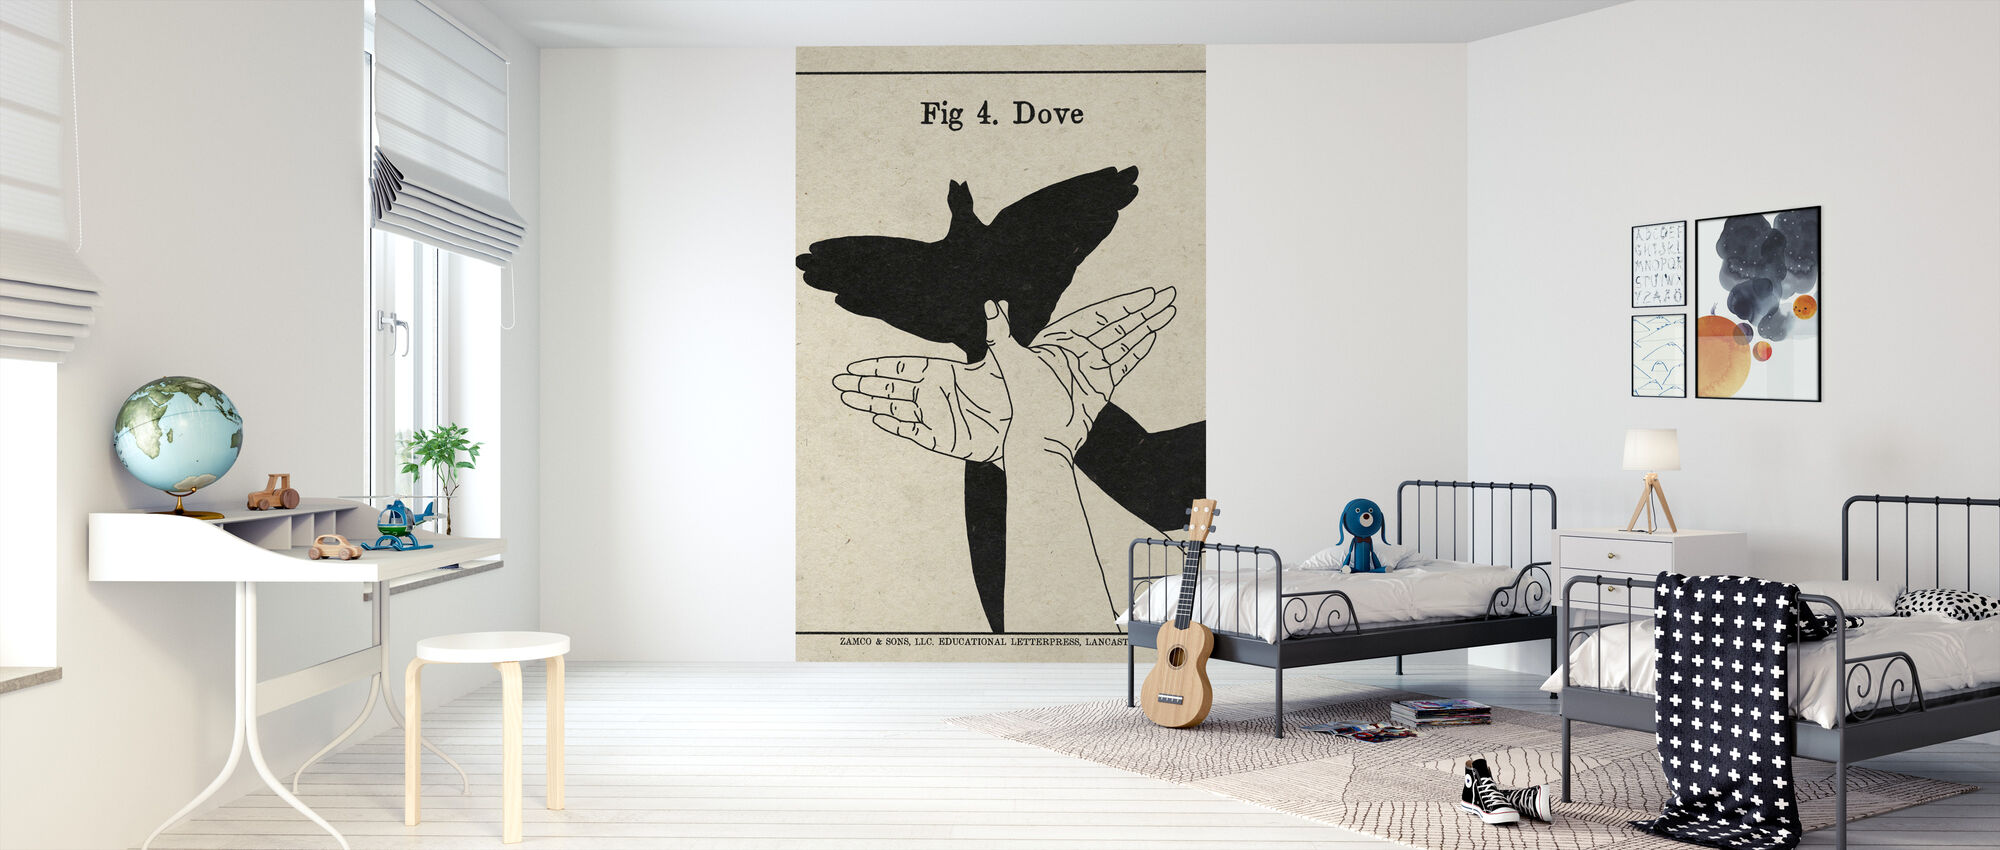 The Art of Shadows - Dove - Wallpaper - Kids Room